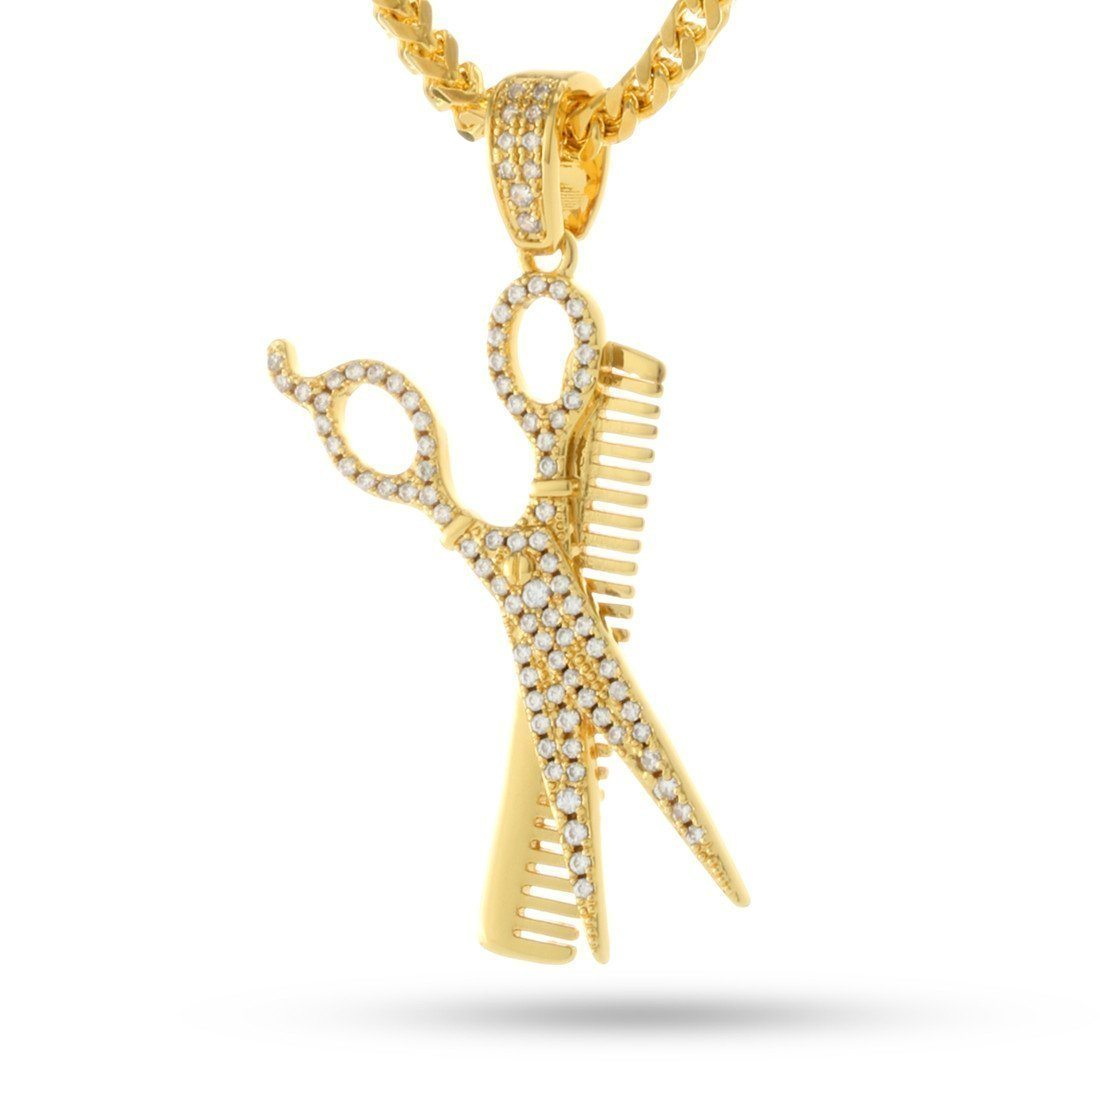 Image of Comb and Scissors Necklace